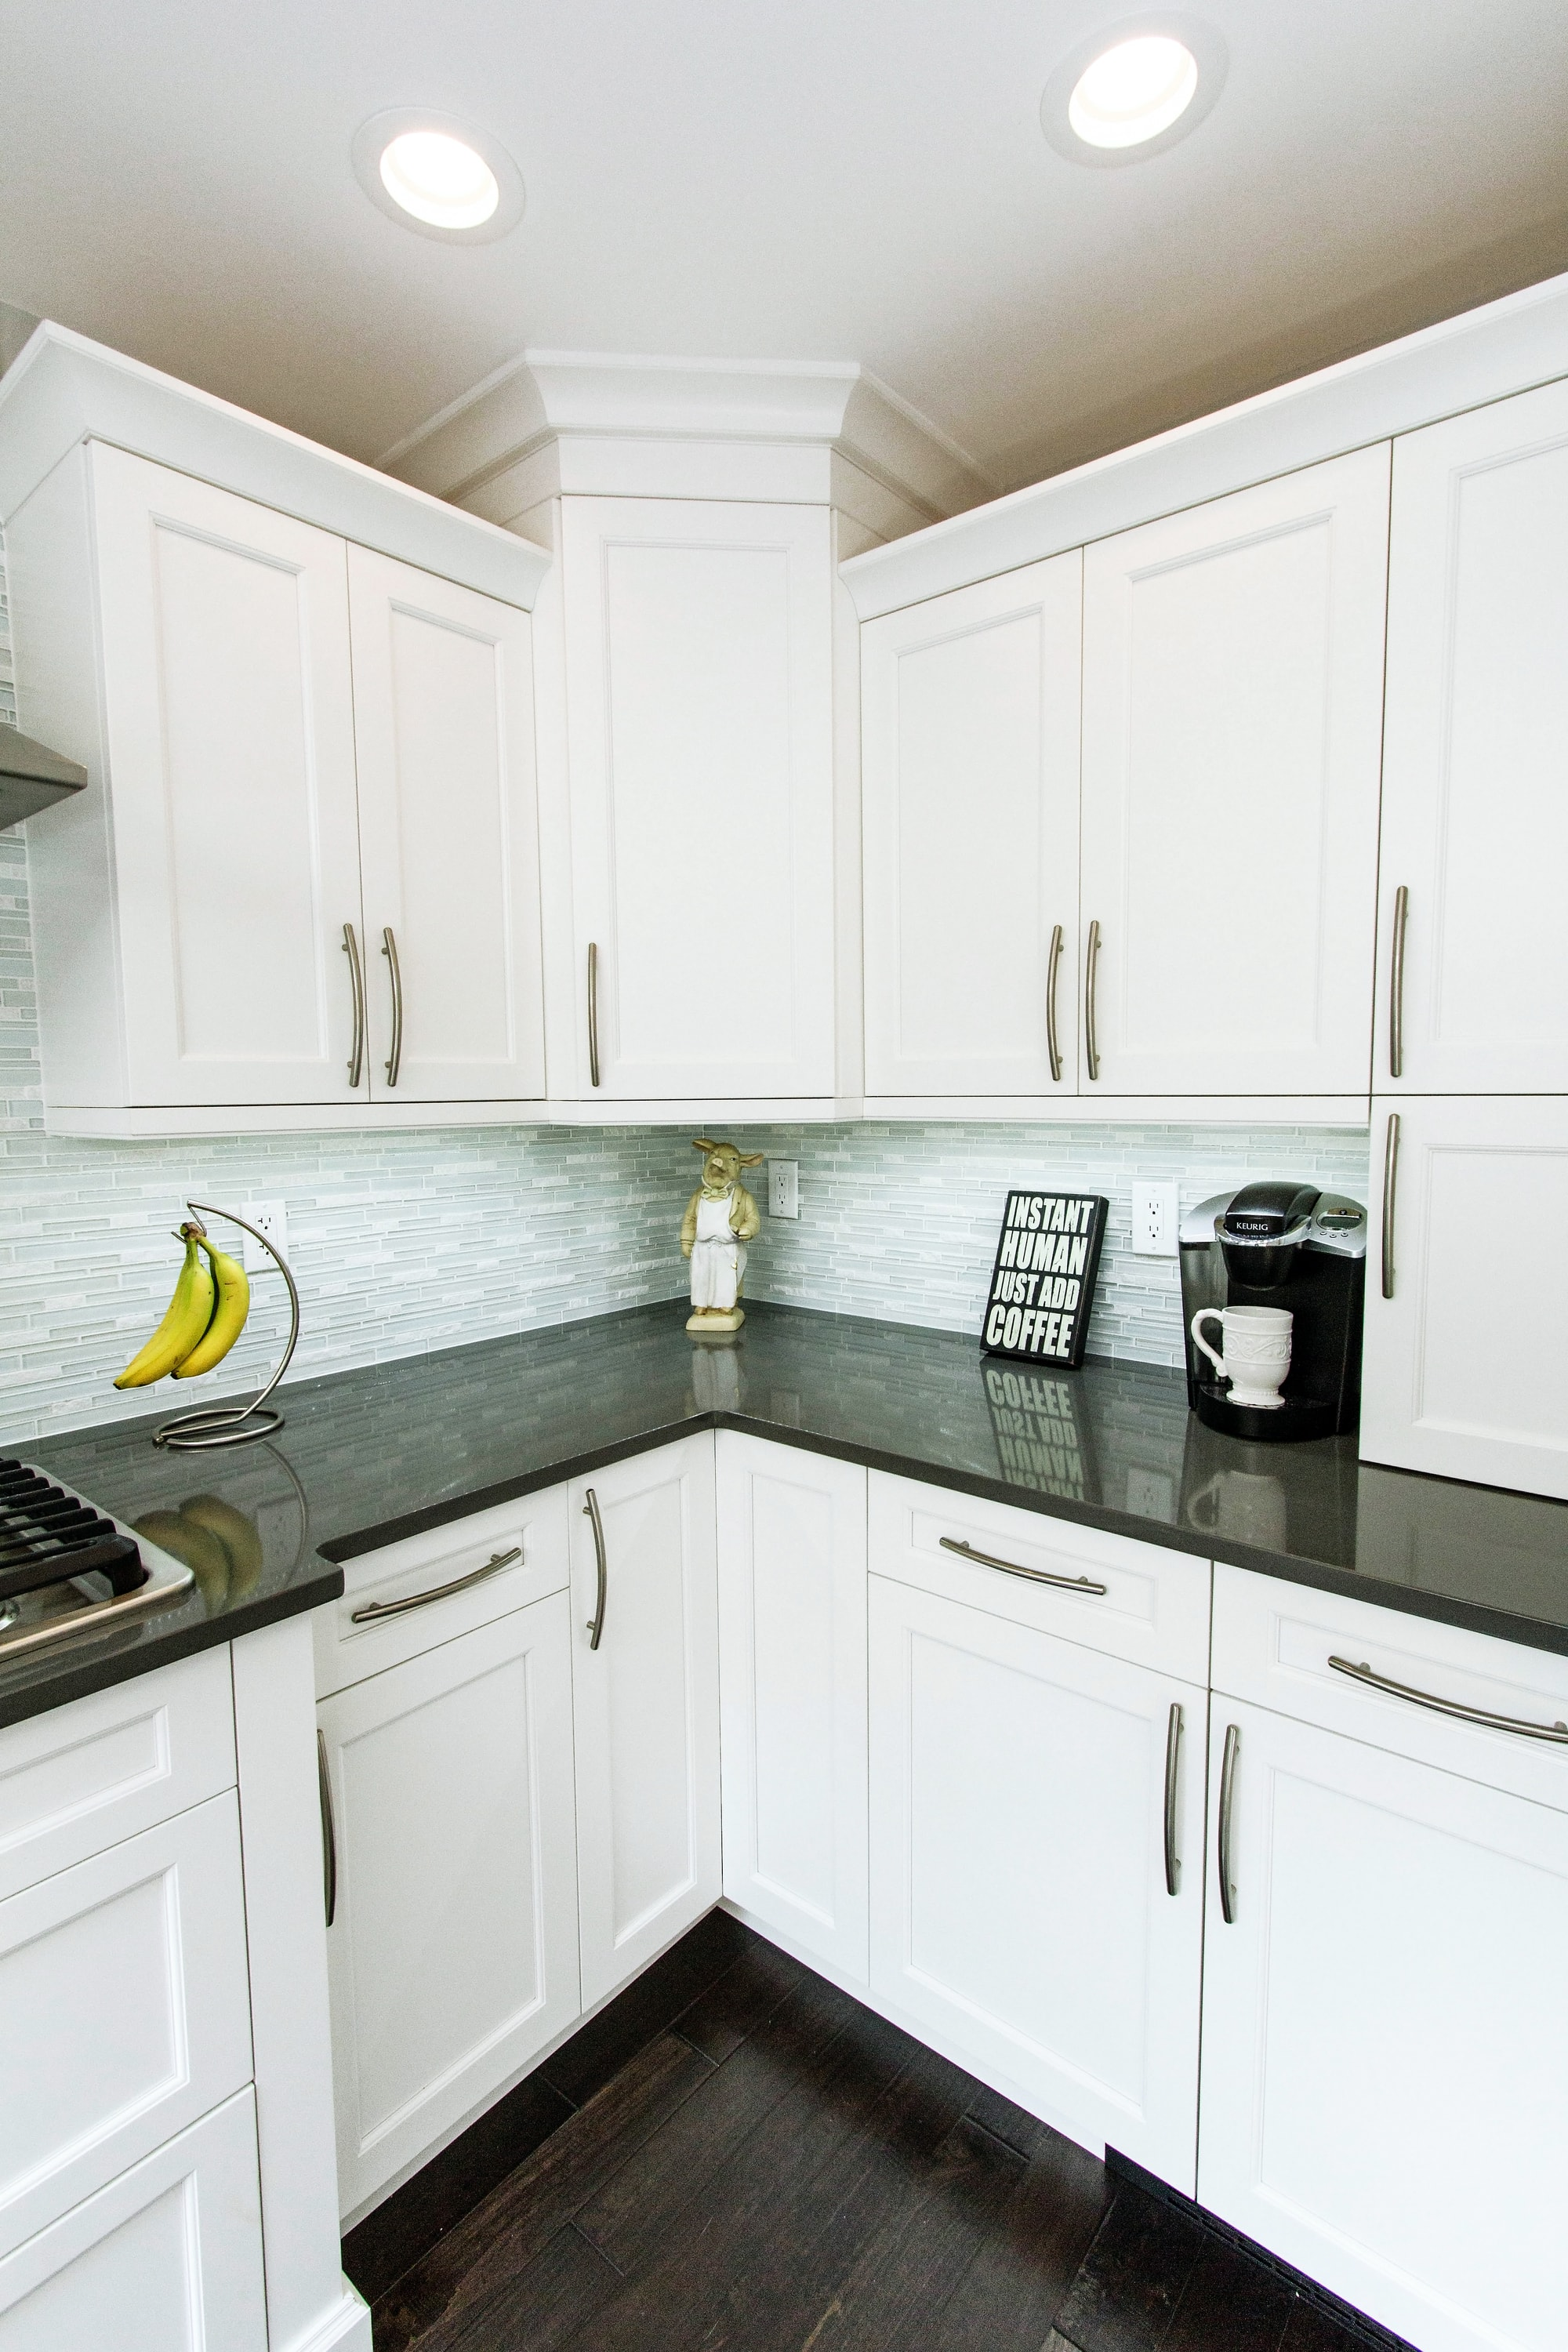 Transitional style kitchen with black countertop